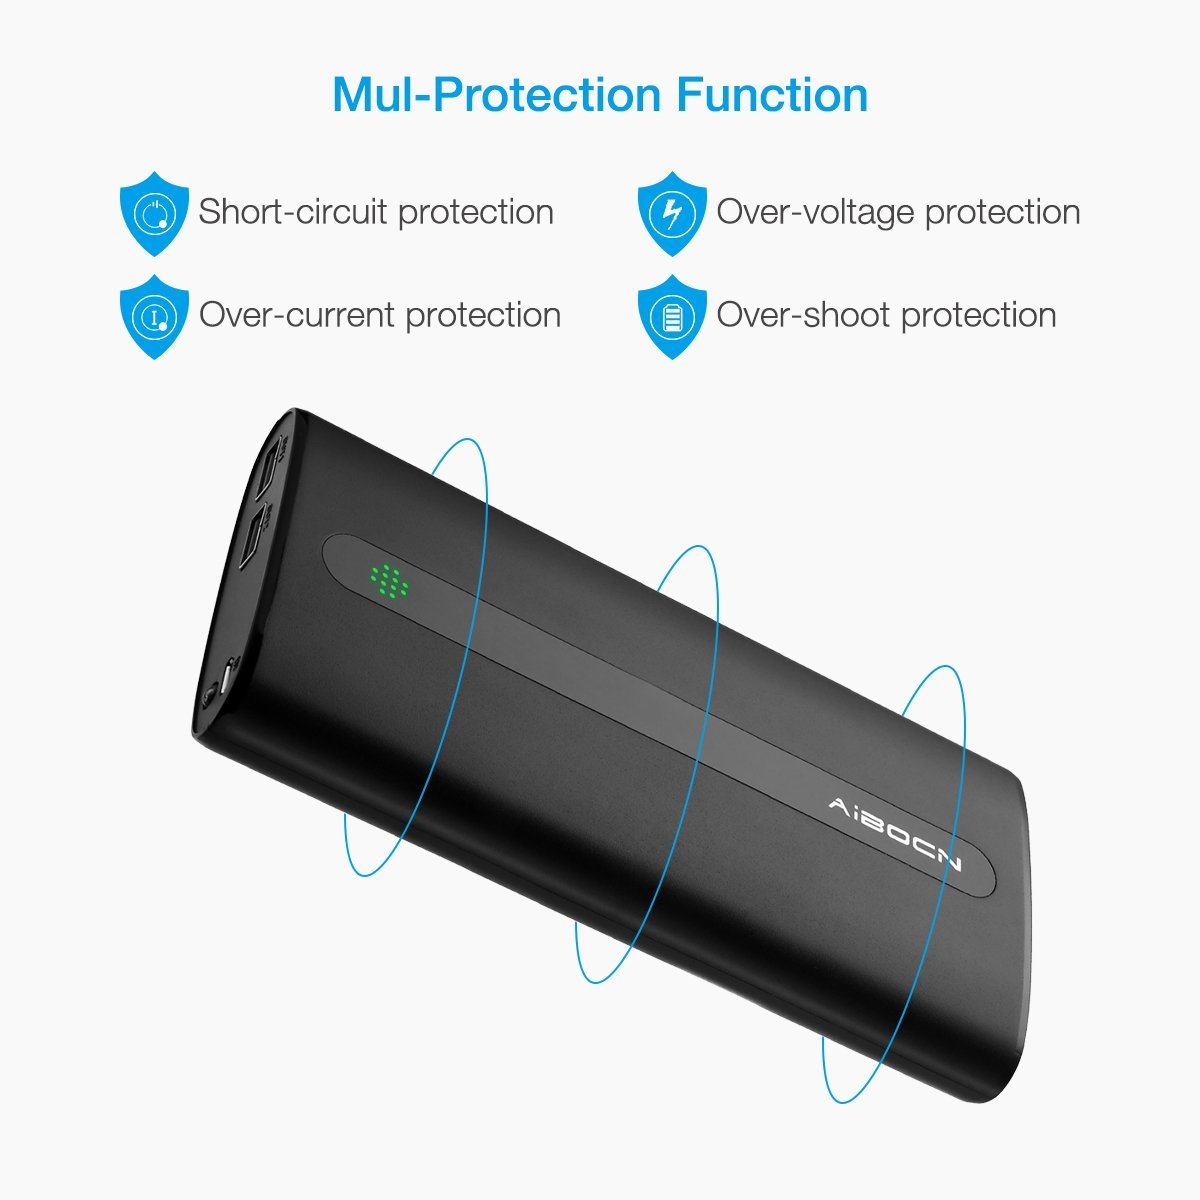 Compact Power Bank 20000mah Portable Battery For Samsung Galaxy Tablet To Usb Cable Wiring Diagram Dual Port Design